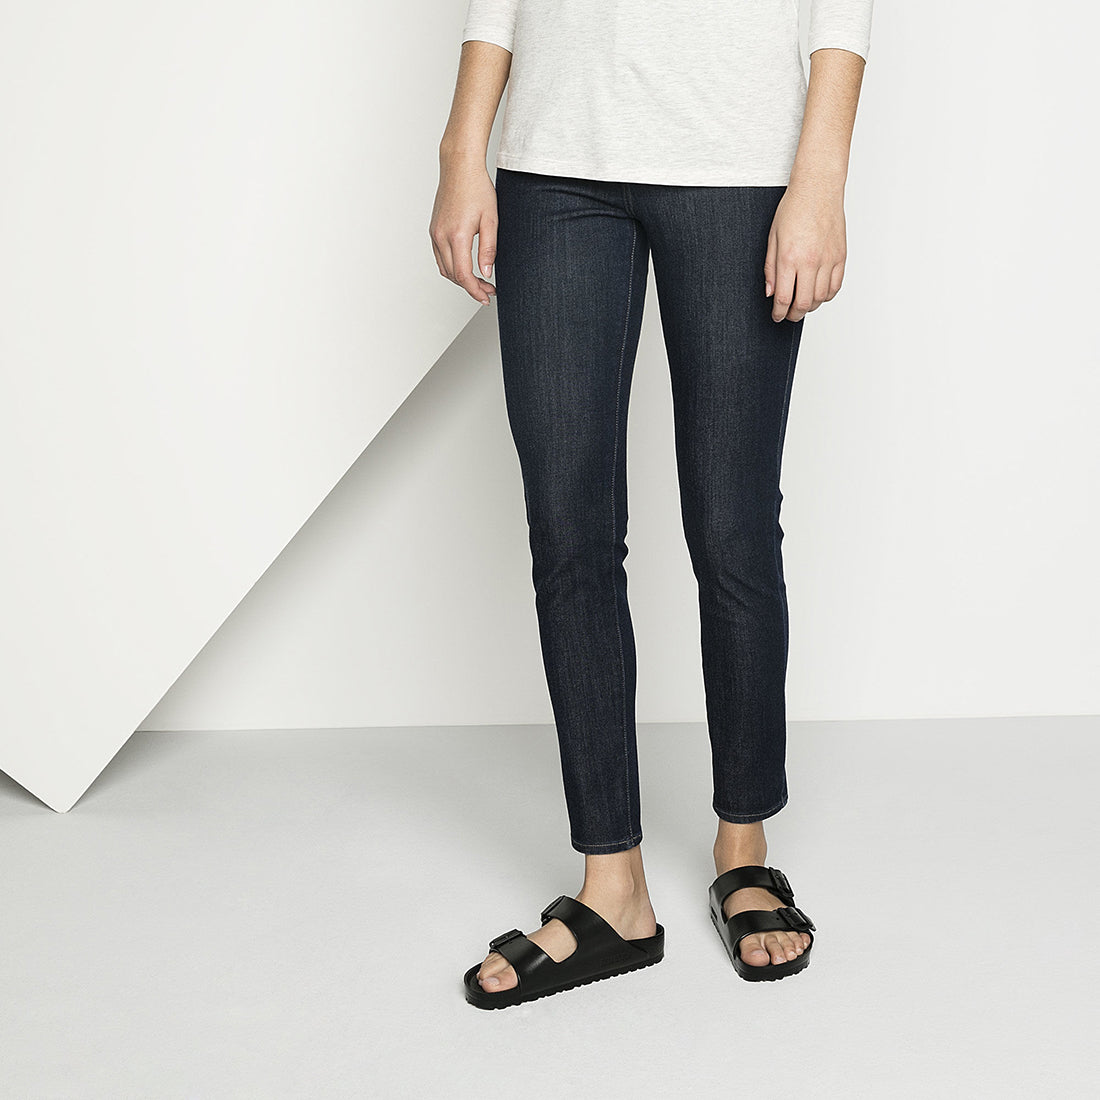 Arizona EVA (Narrow) - Black - 129423